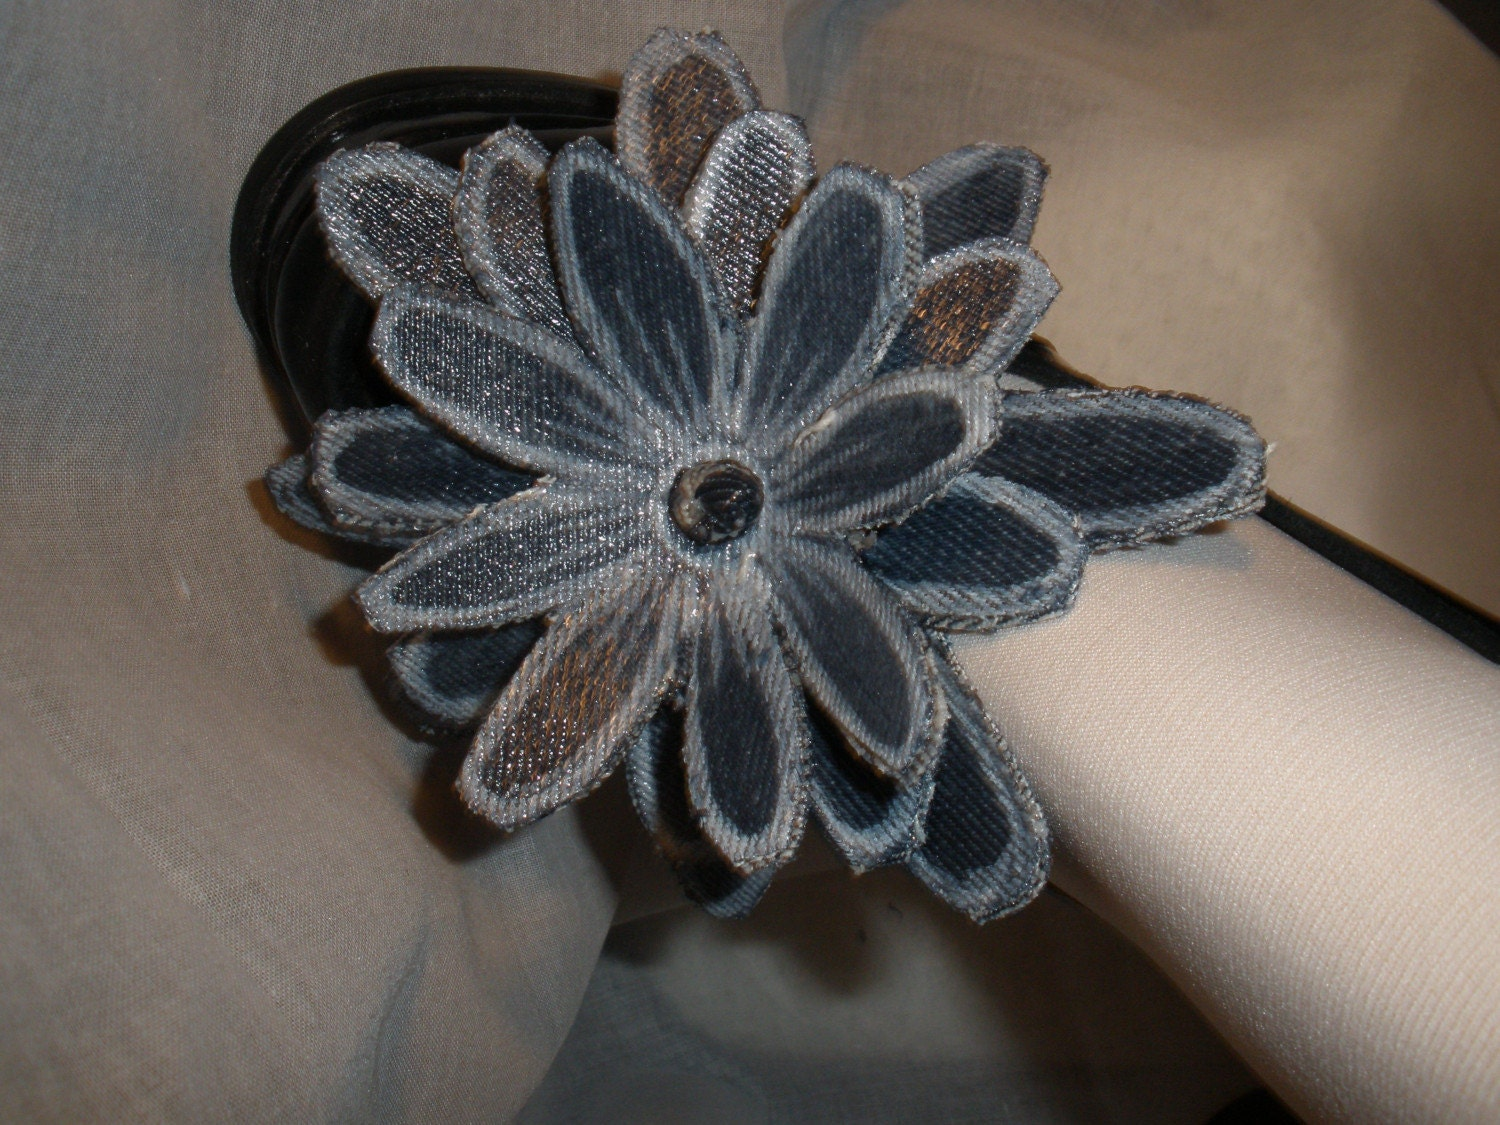 Adorable Star Burst Flower with White Tirm Wrap Accessories for Your High Heel Shoes Not Shoe Clip